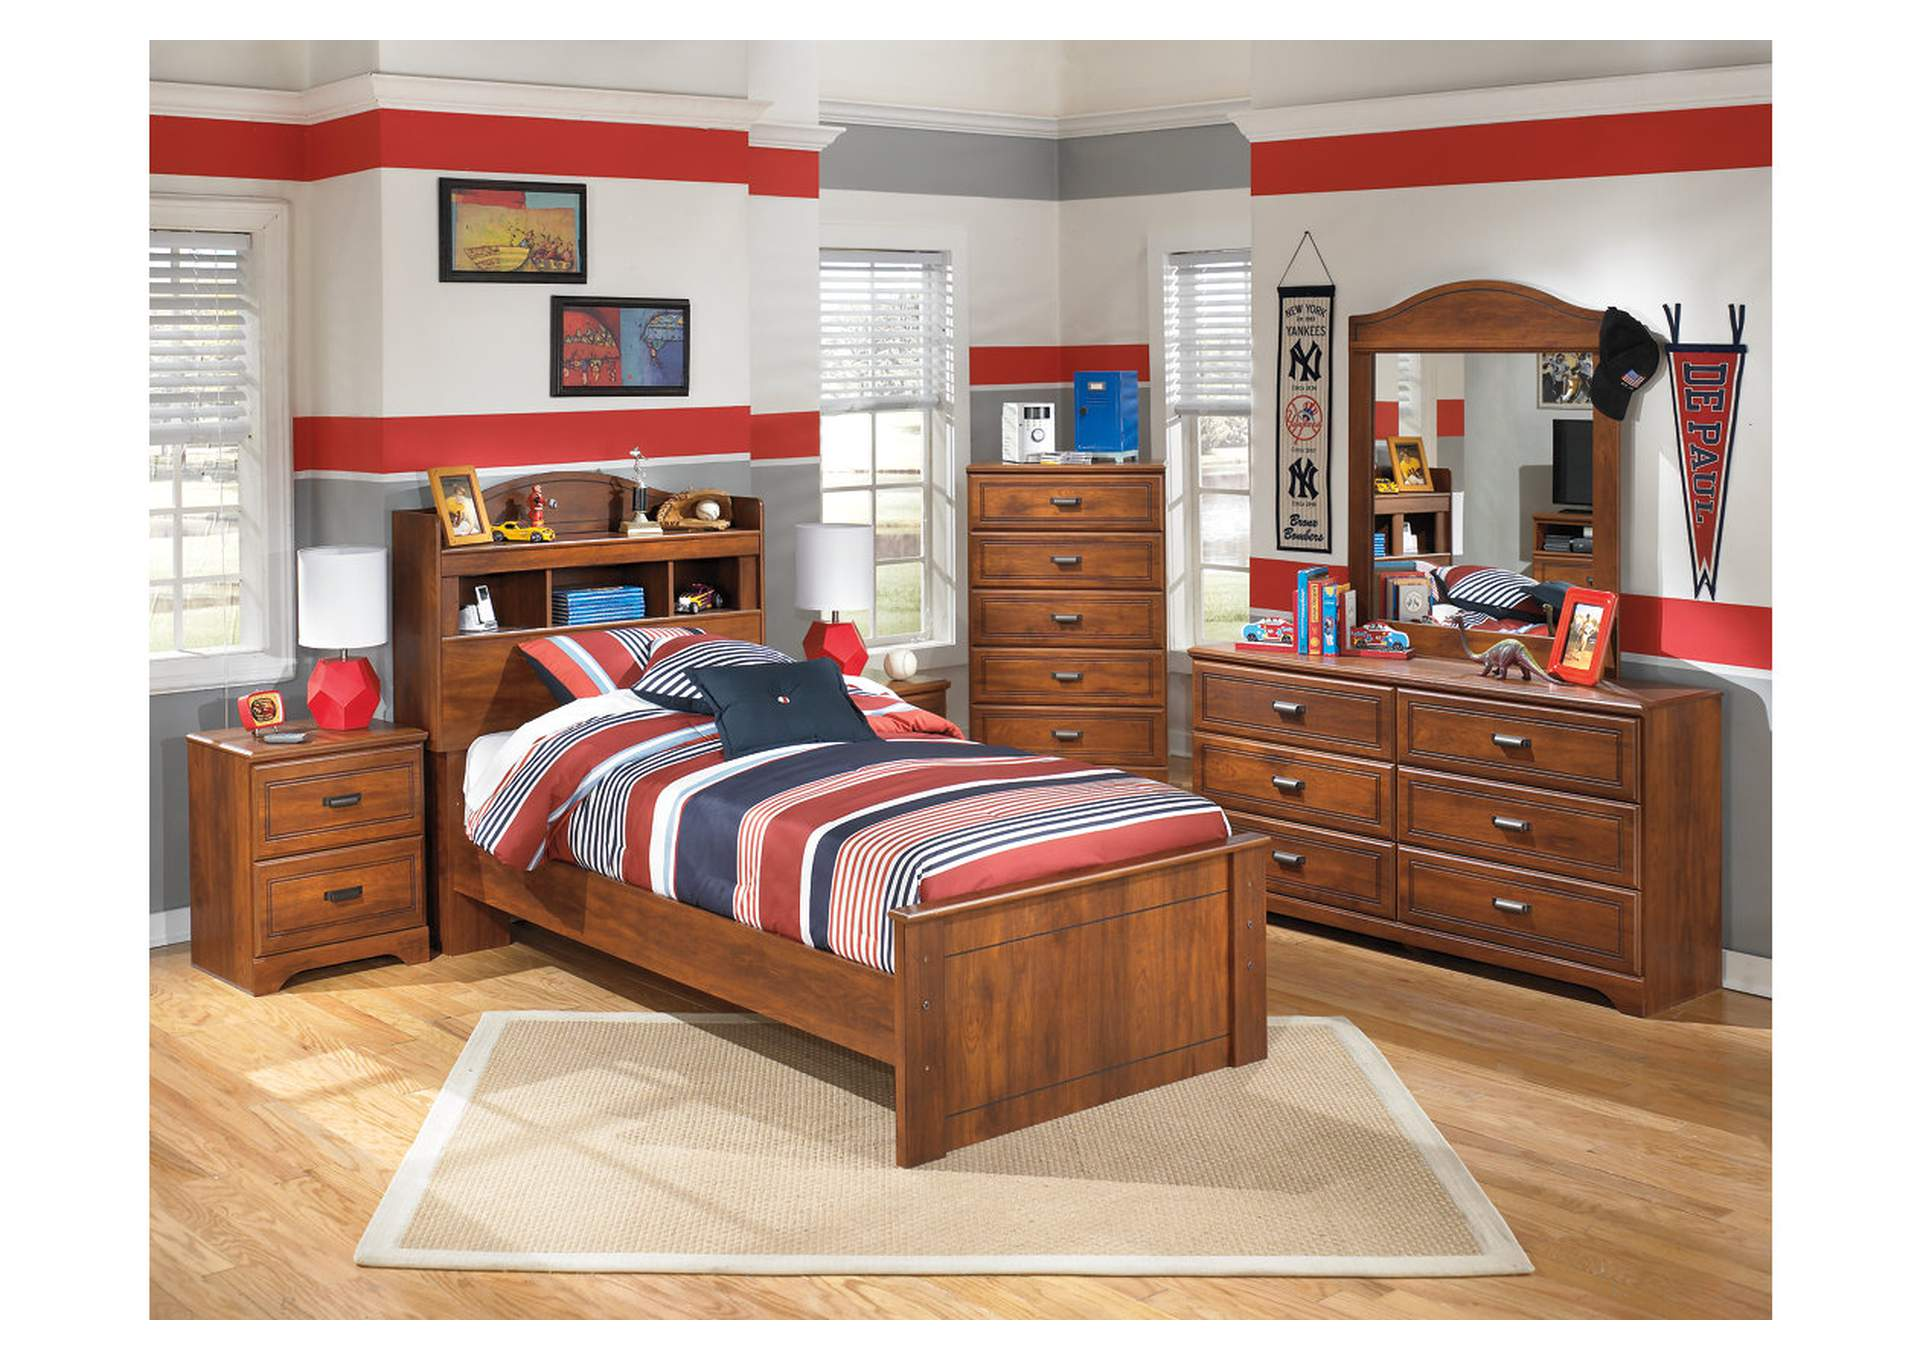 Barchan Twin Bookcase Bed w/Dresser, Mirror, Drawer Chest & Nightstand,Signature Design by Ashley